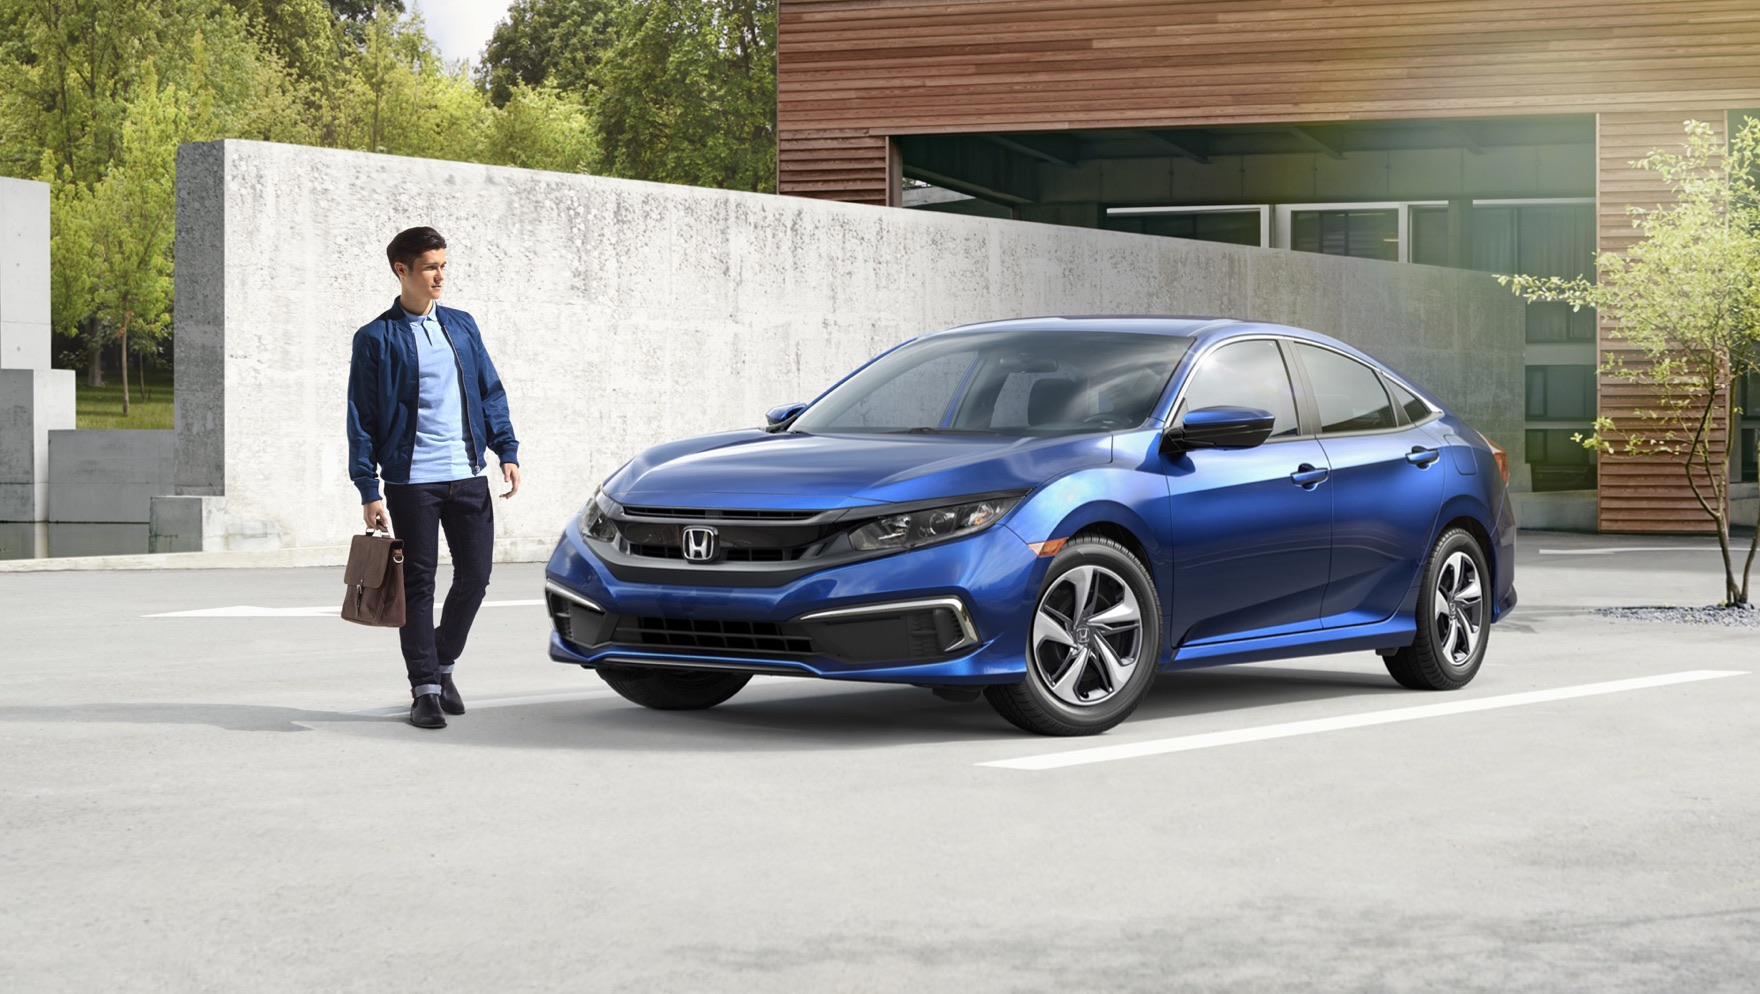 Front driver-side view of the 2020 Honda Civic LX Sedan in Aegean Blue Metallic parked in front of modern building.